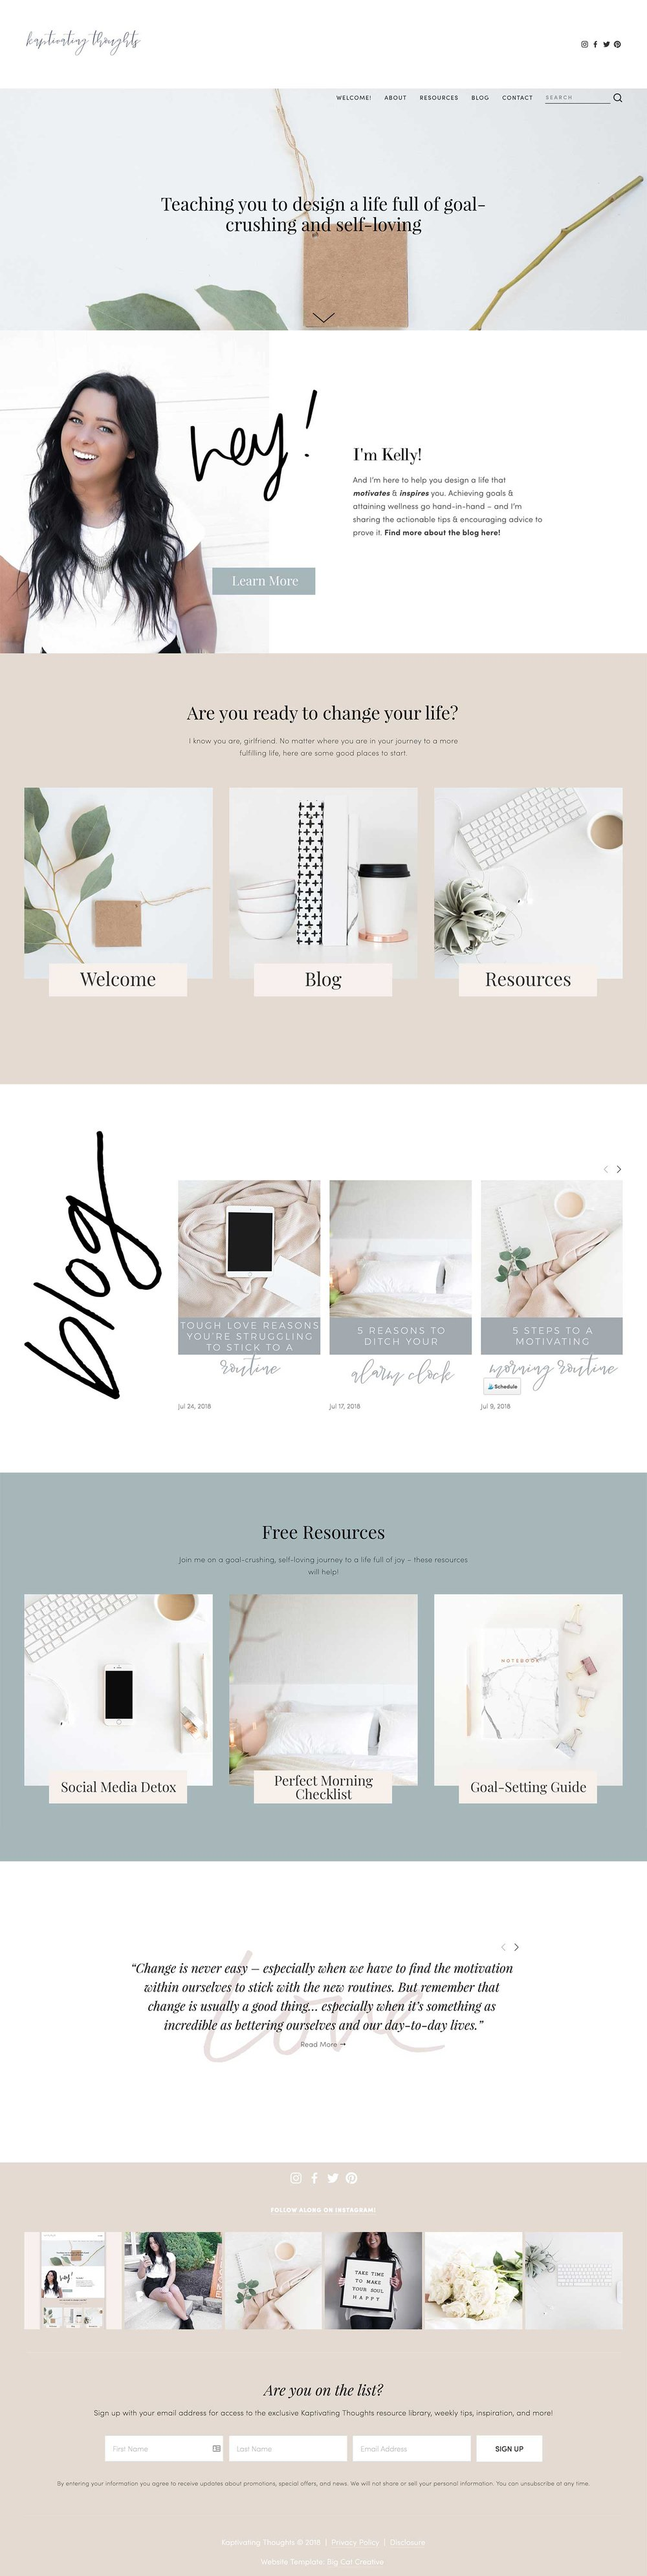 Squarespace Template Design by Big Cat Creative - Template Showcase - Kaptivating Thoughts